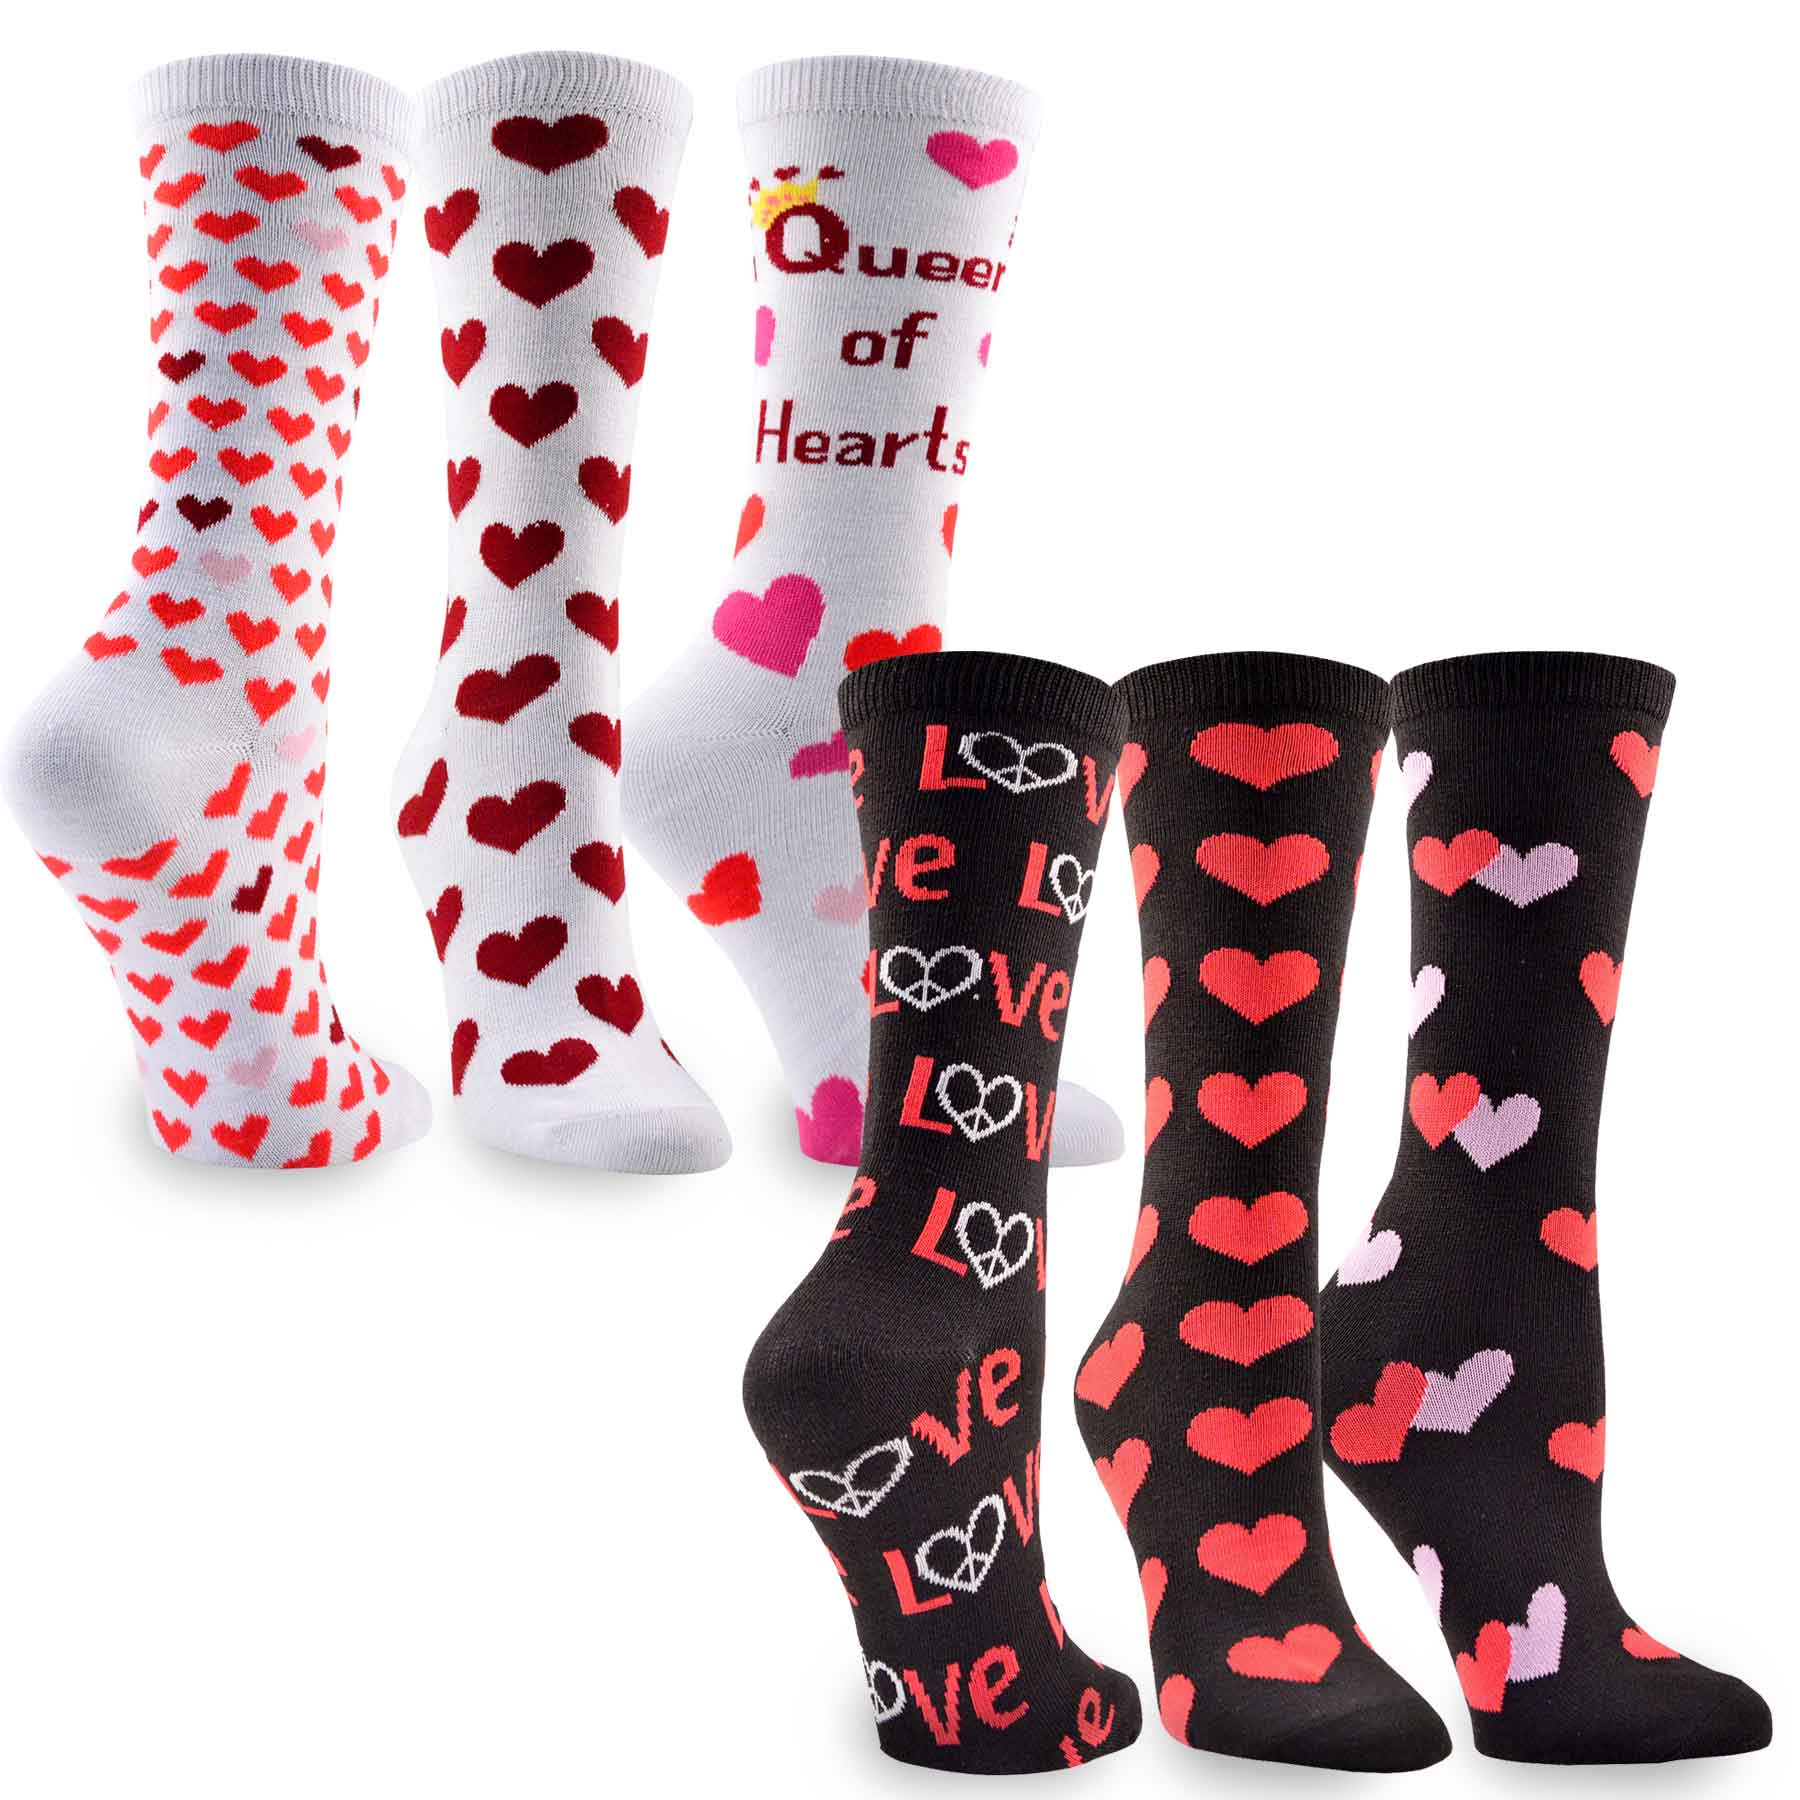 TeeHee Valentine's Day Hearts Love Women's Asst Crew Socks 6-Pk, Black White